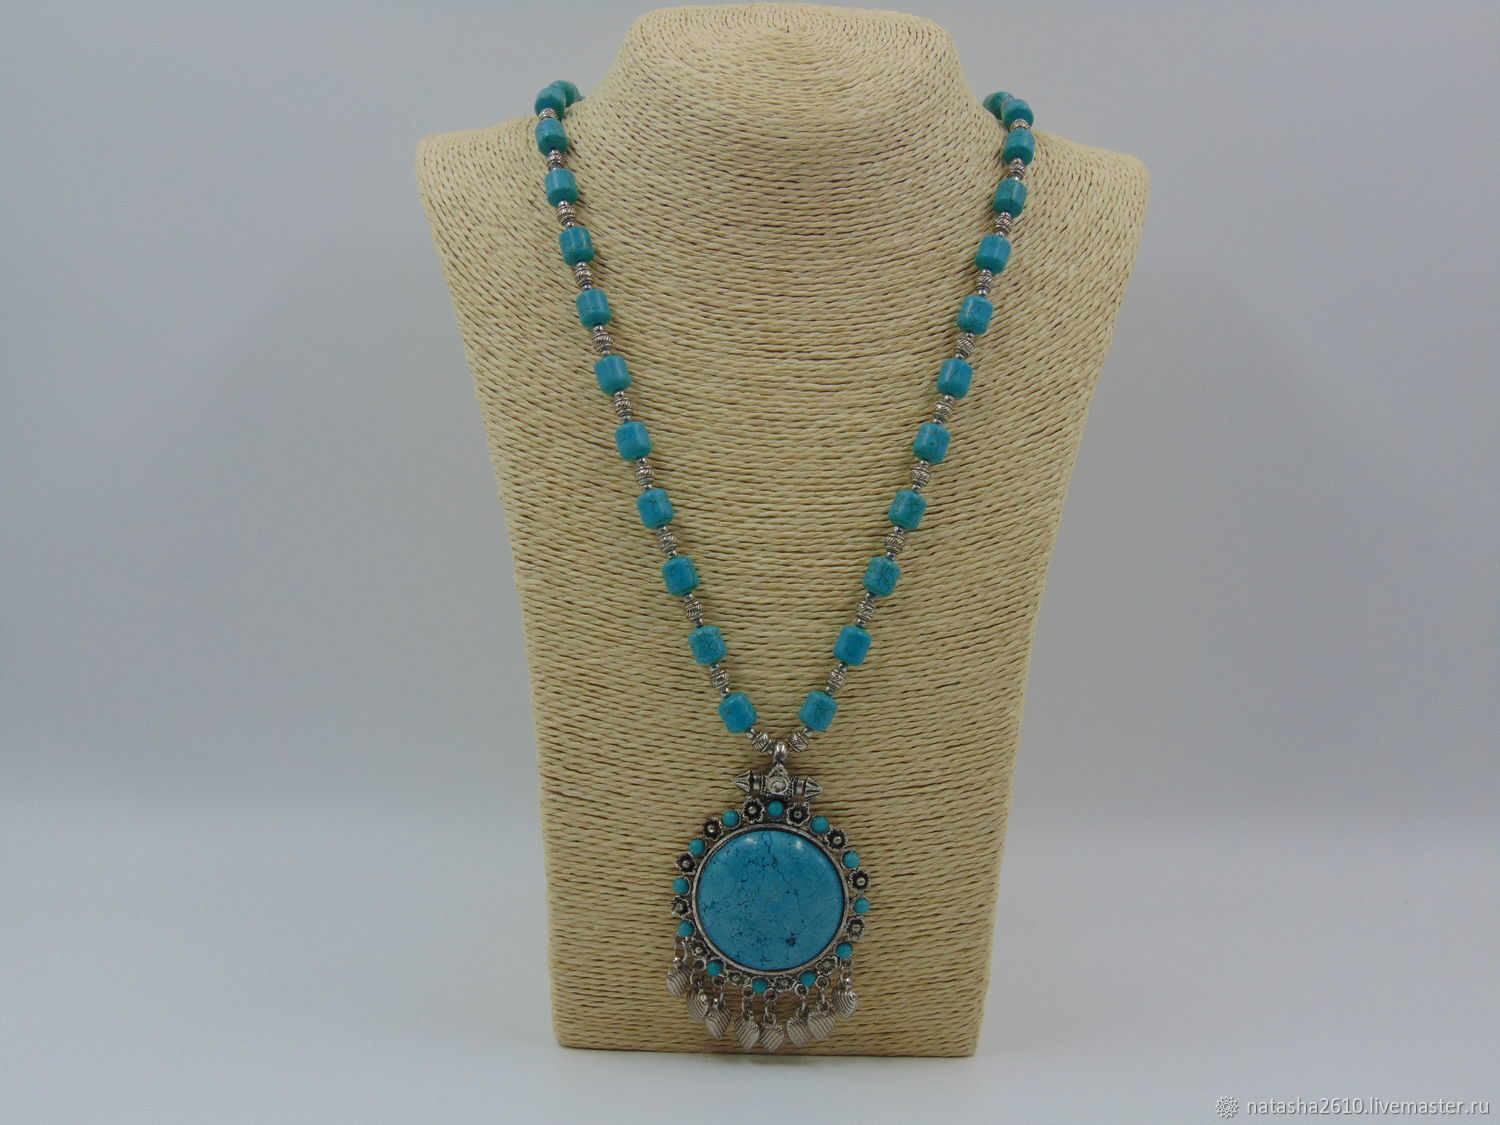 Beads with a pendant made of natural stones 'Turquoise chic', Necklace, Velikiy Novgorod,  Фото №1